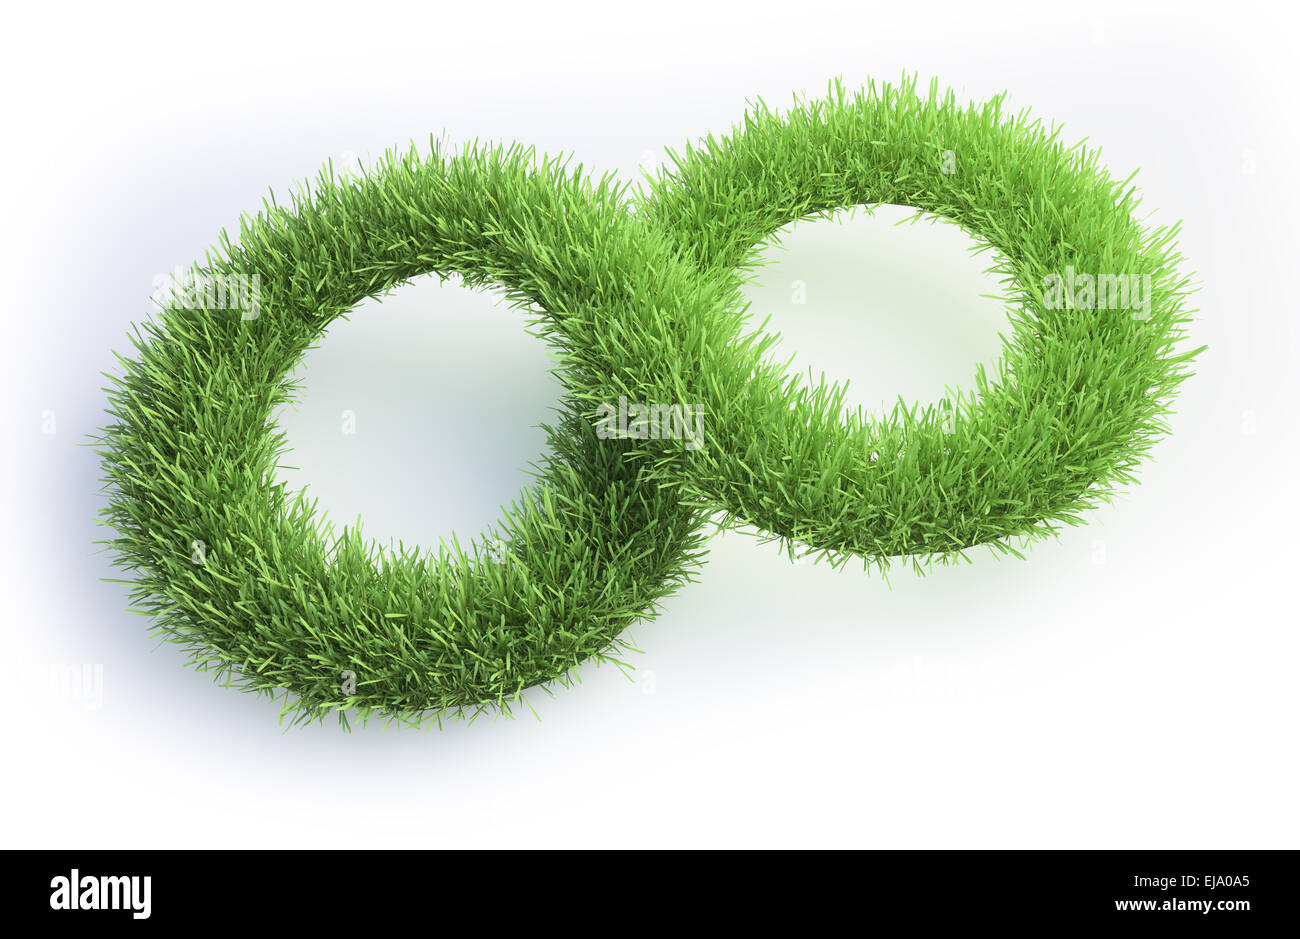 Grass patch shaped like an infinity symbol. - Stock Image